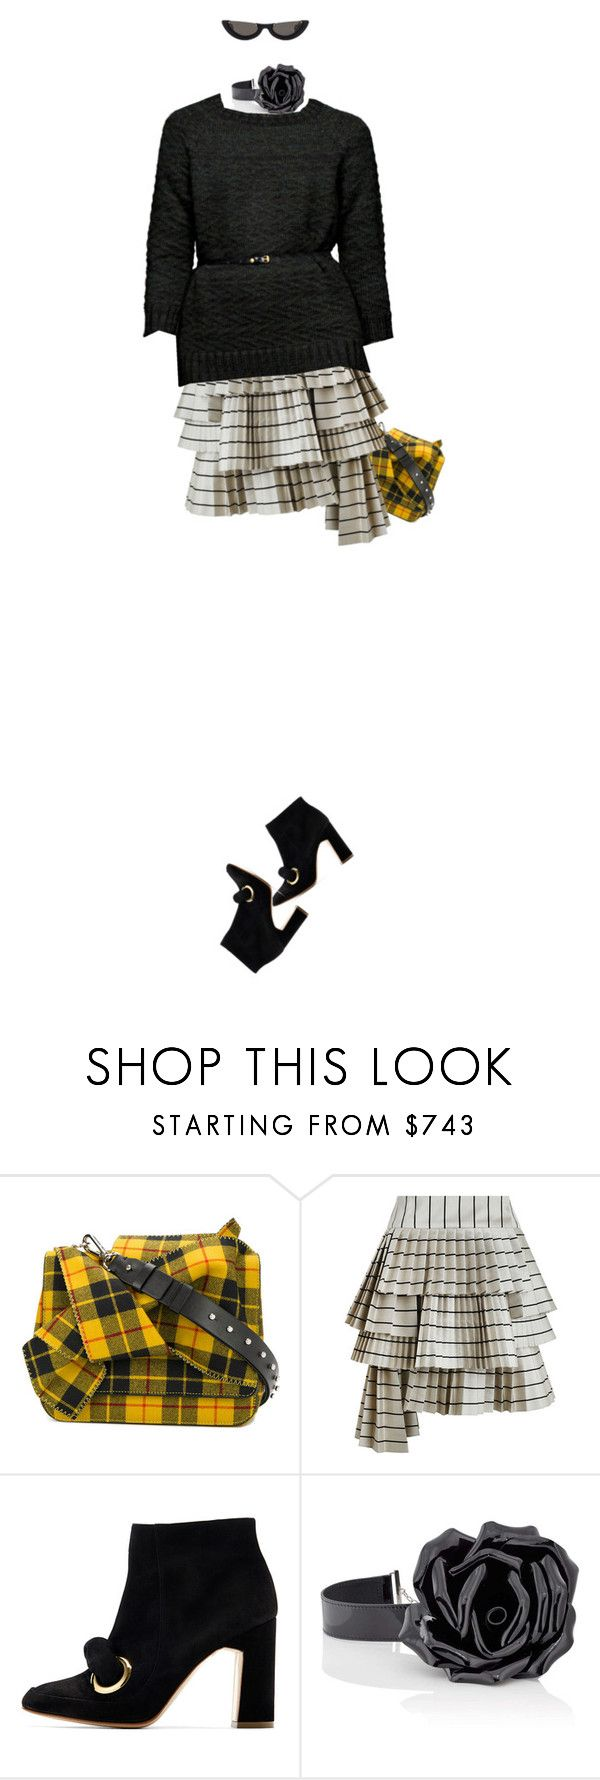 """""""Sem título #2262"""" by land ❤ liked on Polyvore featuring N°21, Zimmermann, Rupert Sanderson, Yves Saint Laurent, Rachel Comey and PAWAKA"""